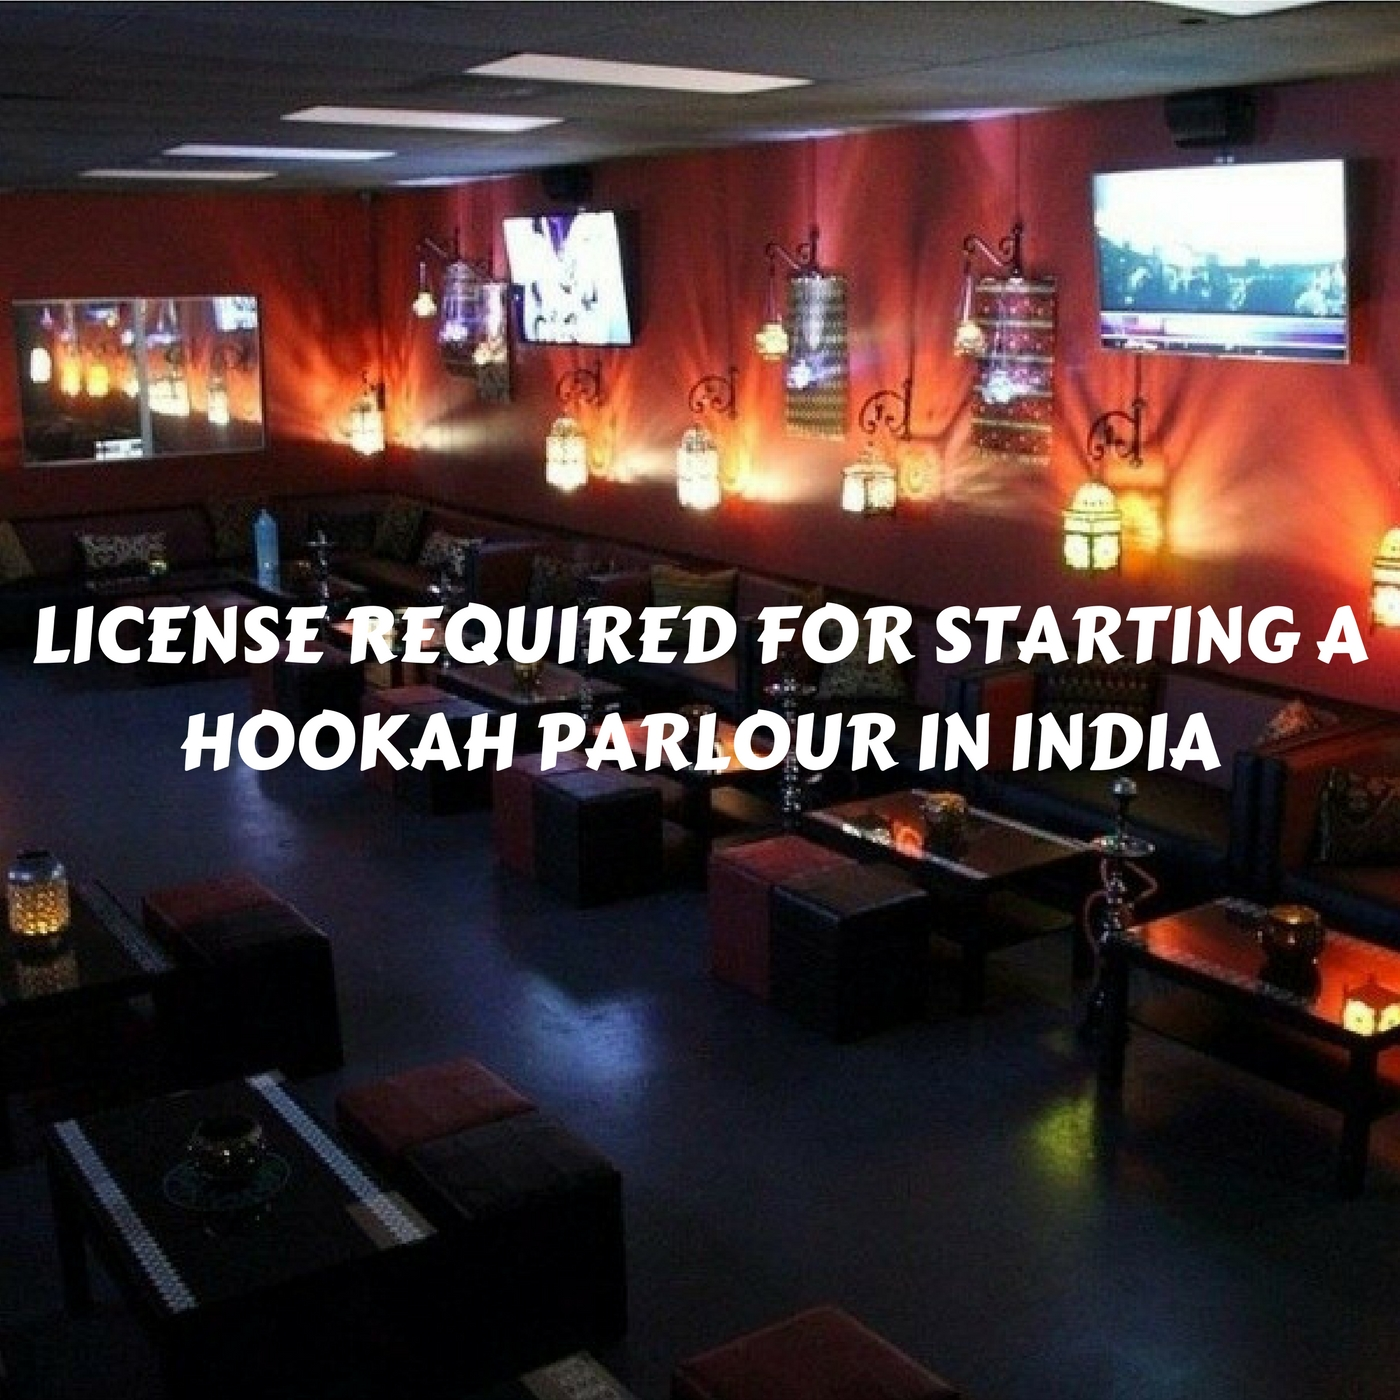 LICENSE REQUIRED FOR STARTING A HOOKAH PARLOUR IN INDIA